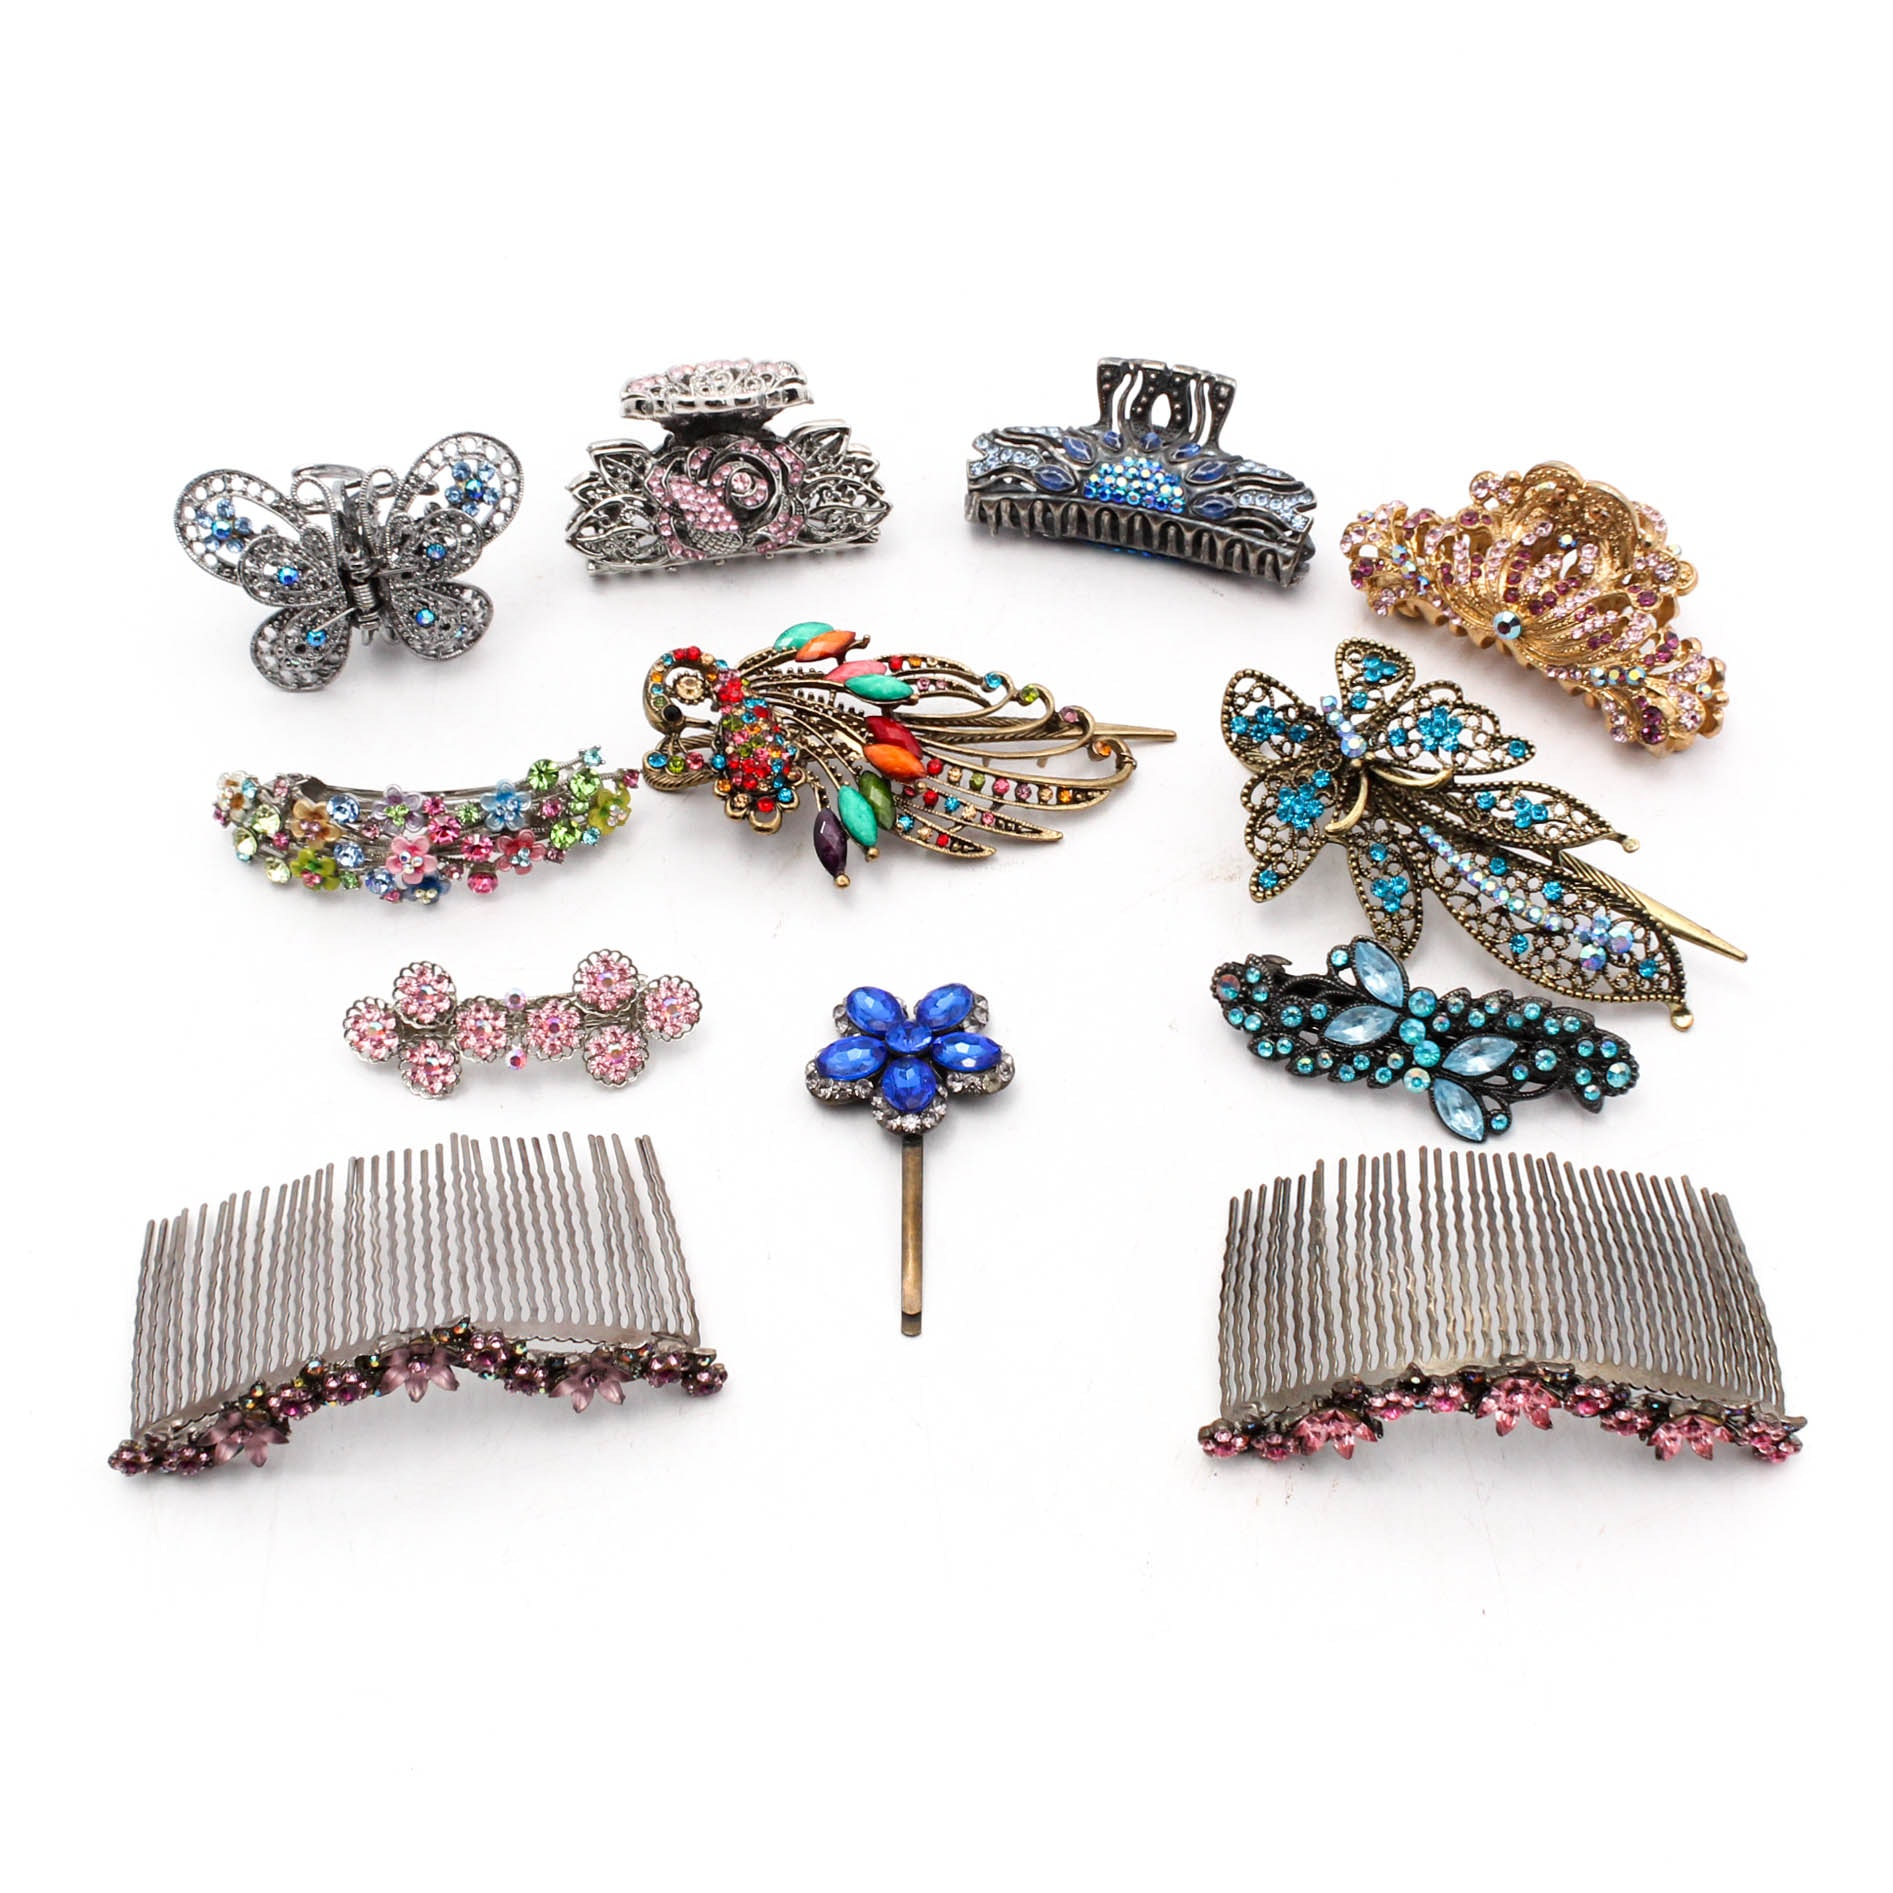 Rhinestone Adorned Hair Clips and Barrettes